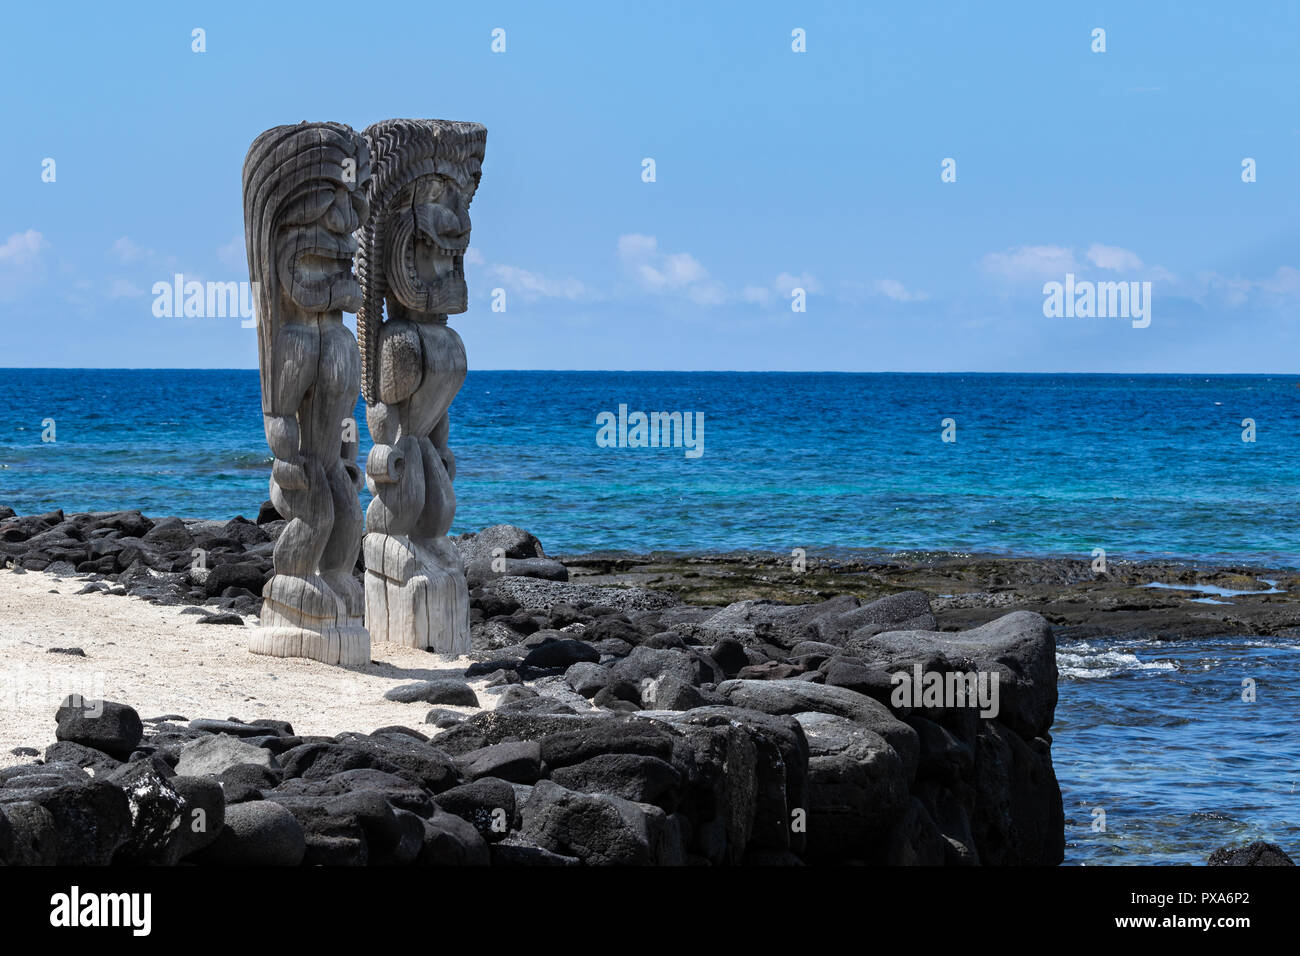 Pair of wooden status (Tikis), place of refuge (Honaunau), Hawaii. Standing on white sand, next to barrier wall of black lava rock. - Stock Image